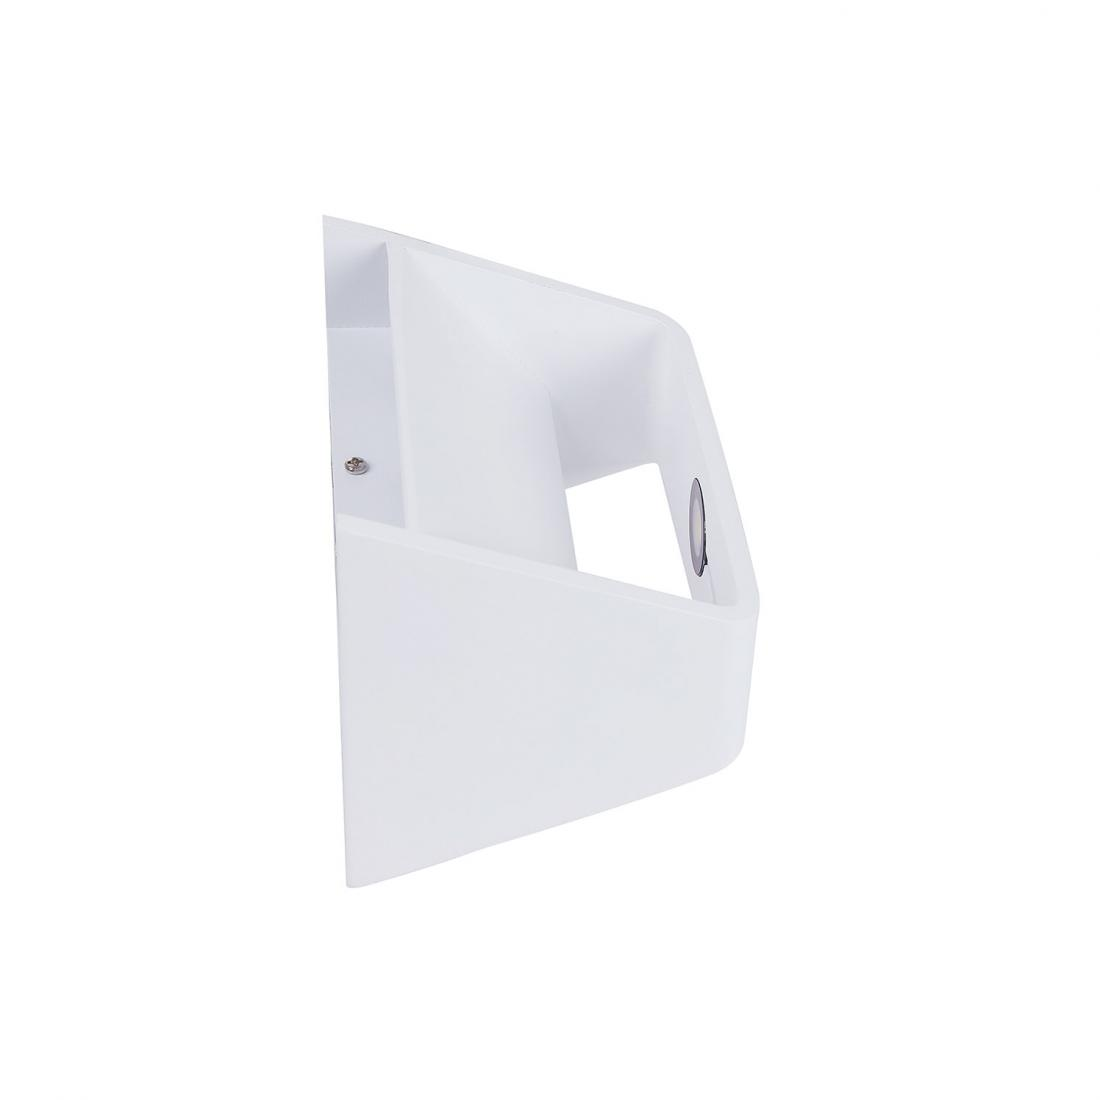 3W indoor white wall mounted wall lights